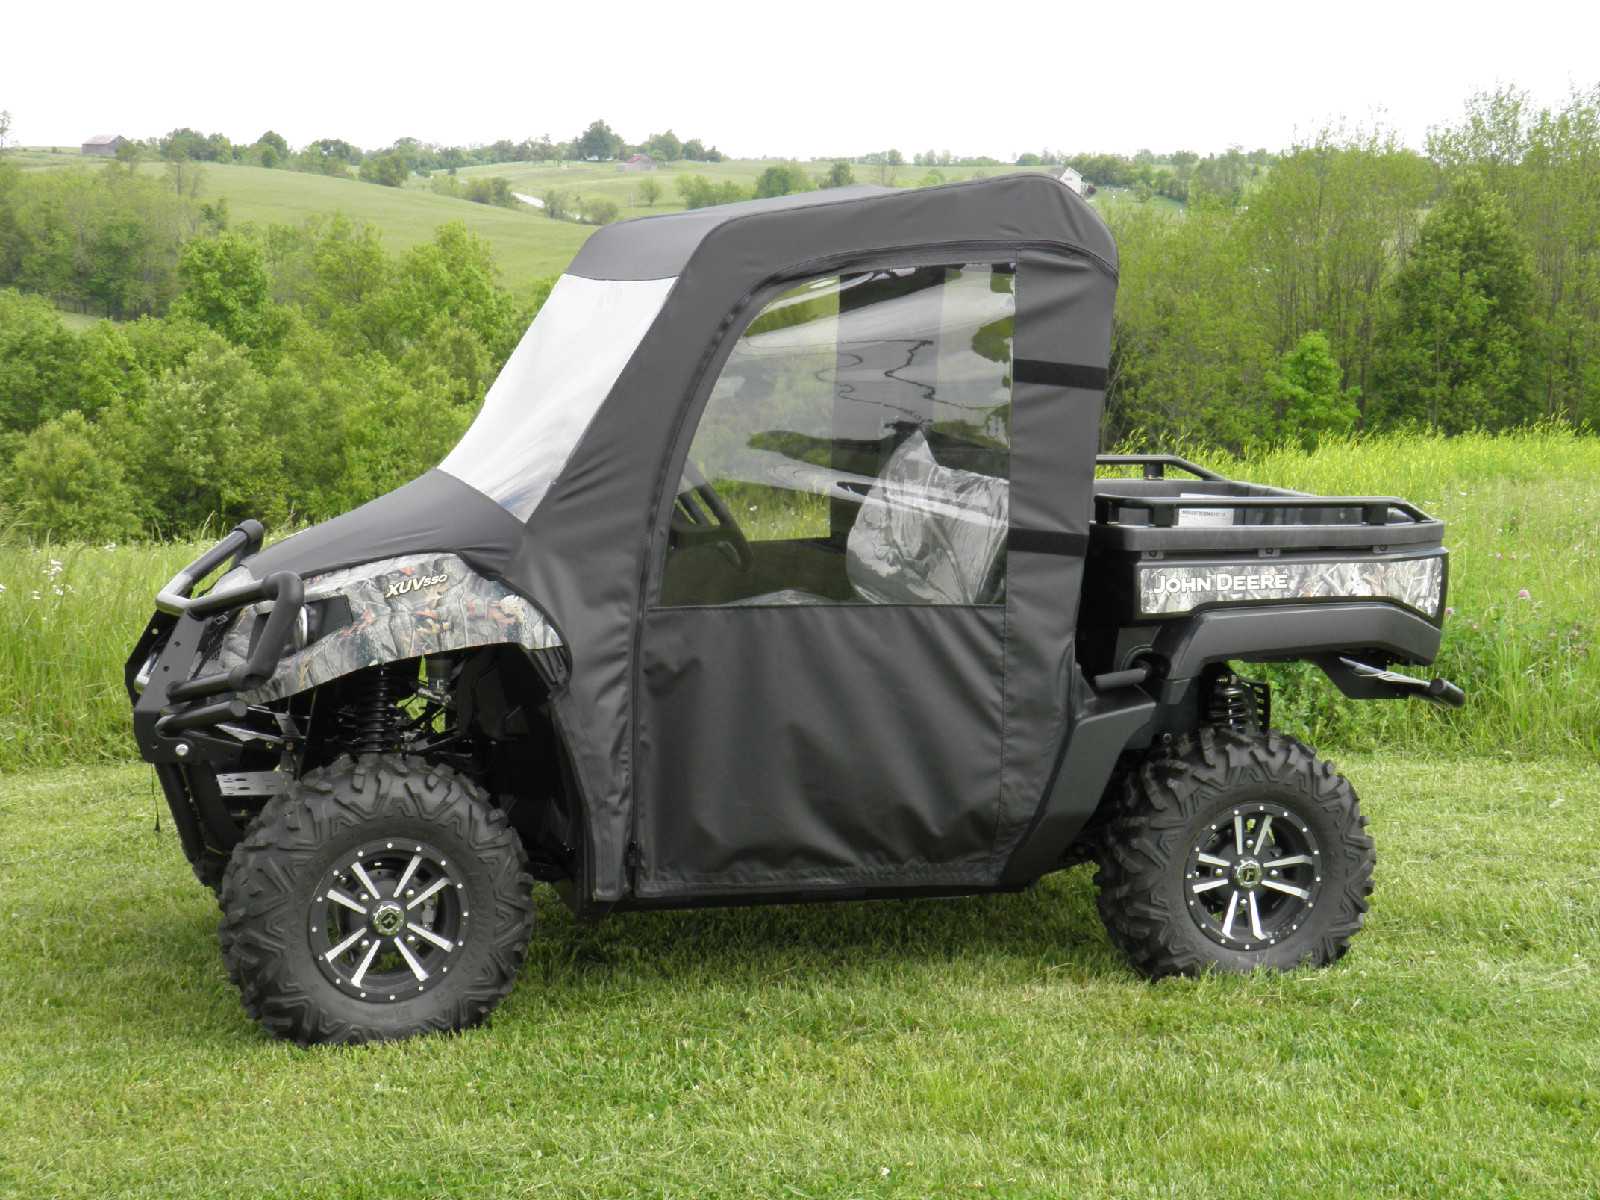 John Deere Gator HPX XUV Soft Full Door Kit – f Road Body Armor